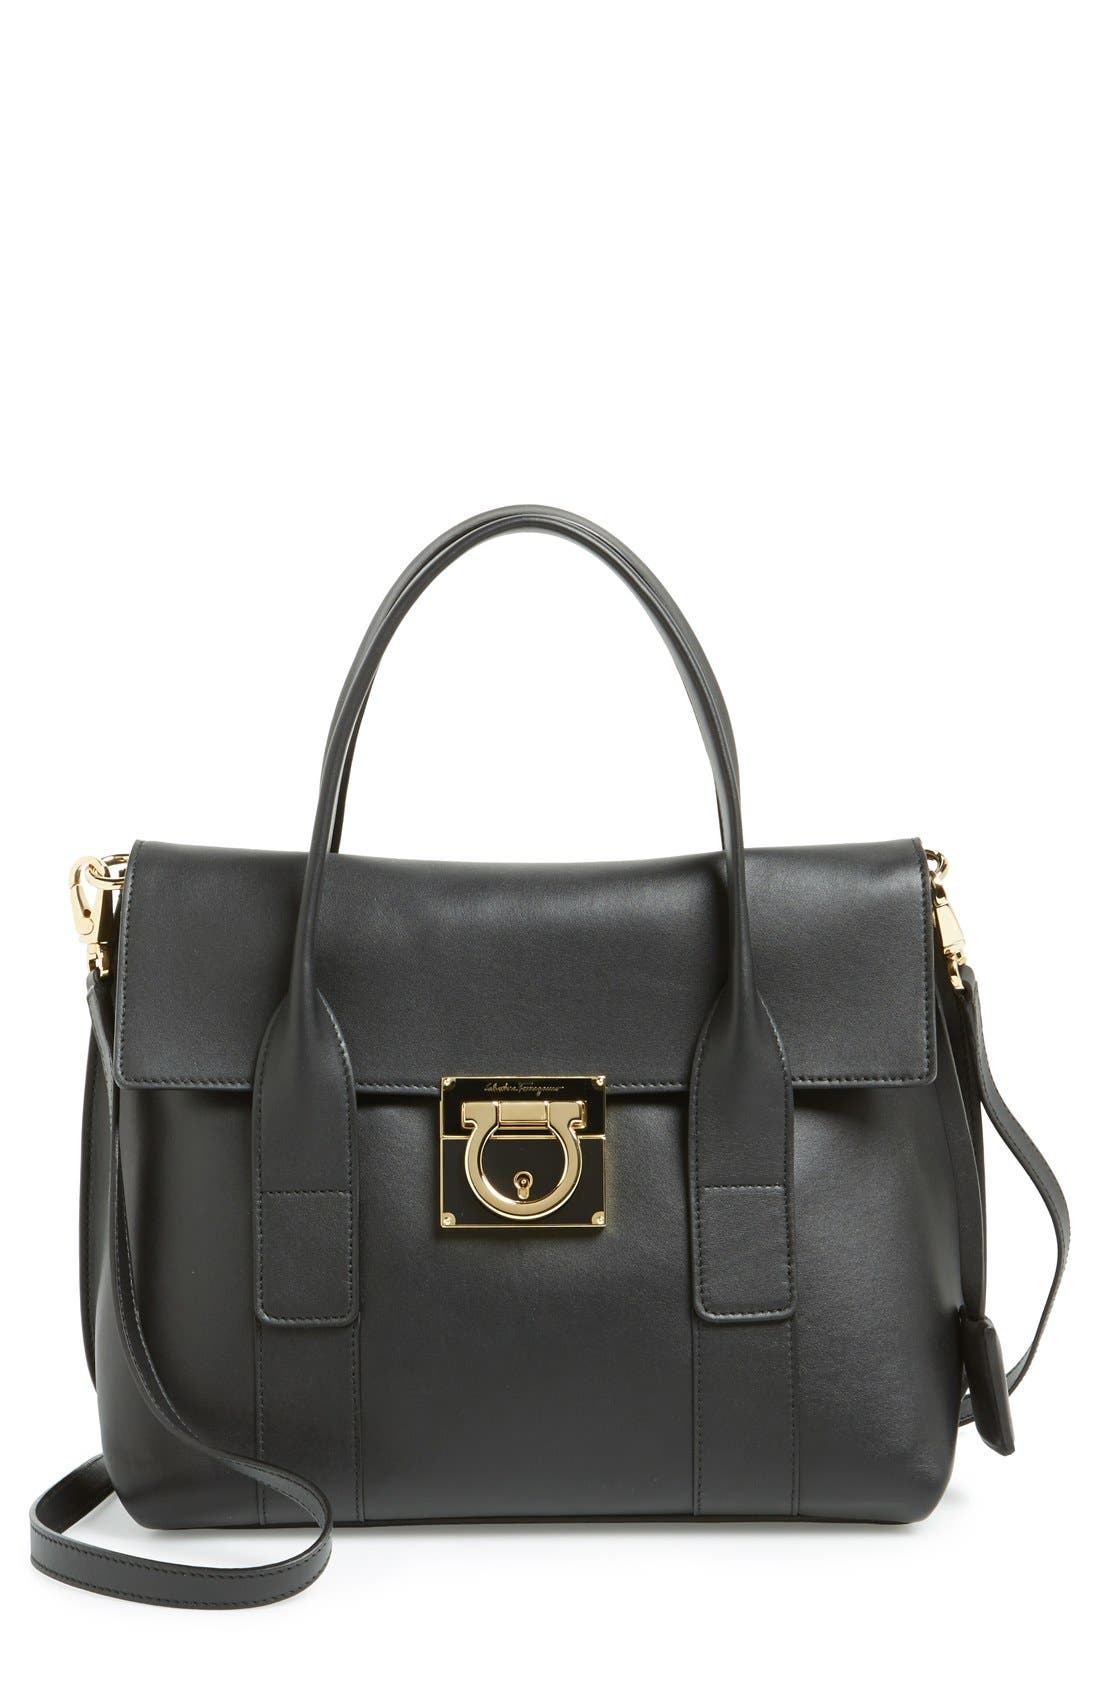 Alternate Image 1 Selected - Salvatore Ferragamo 'Mini Sookie' Leather Satchel